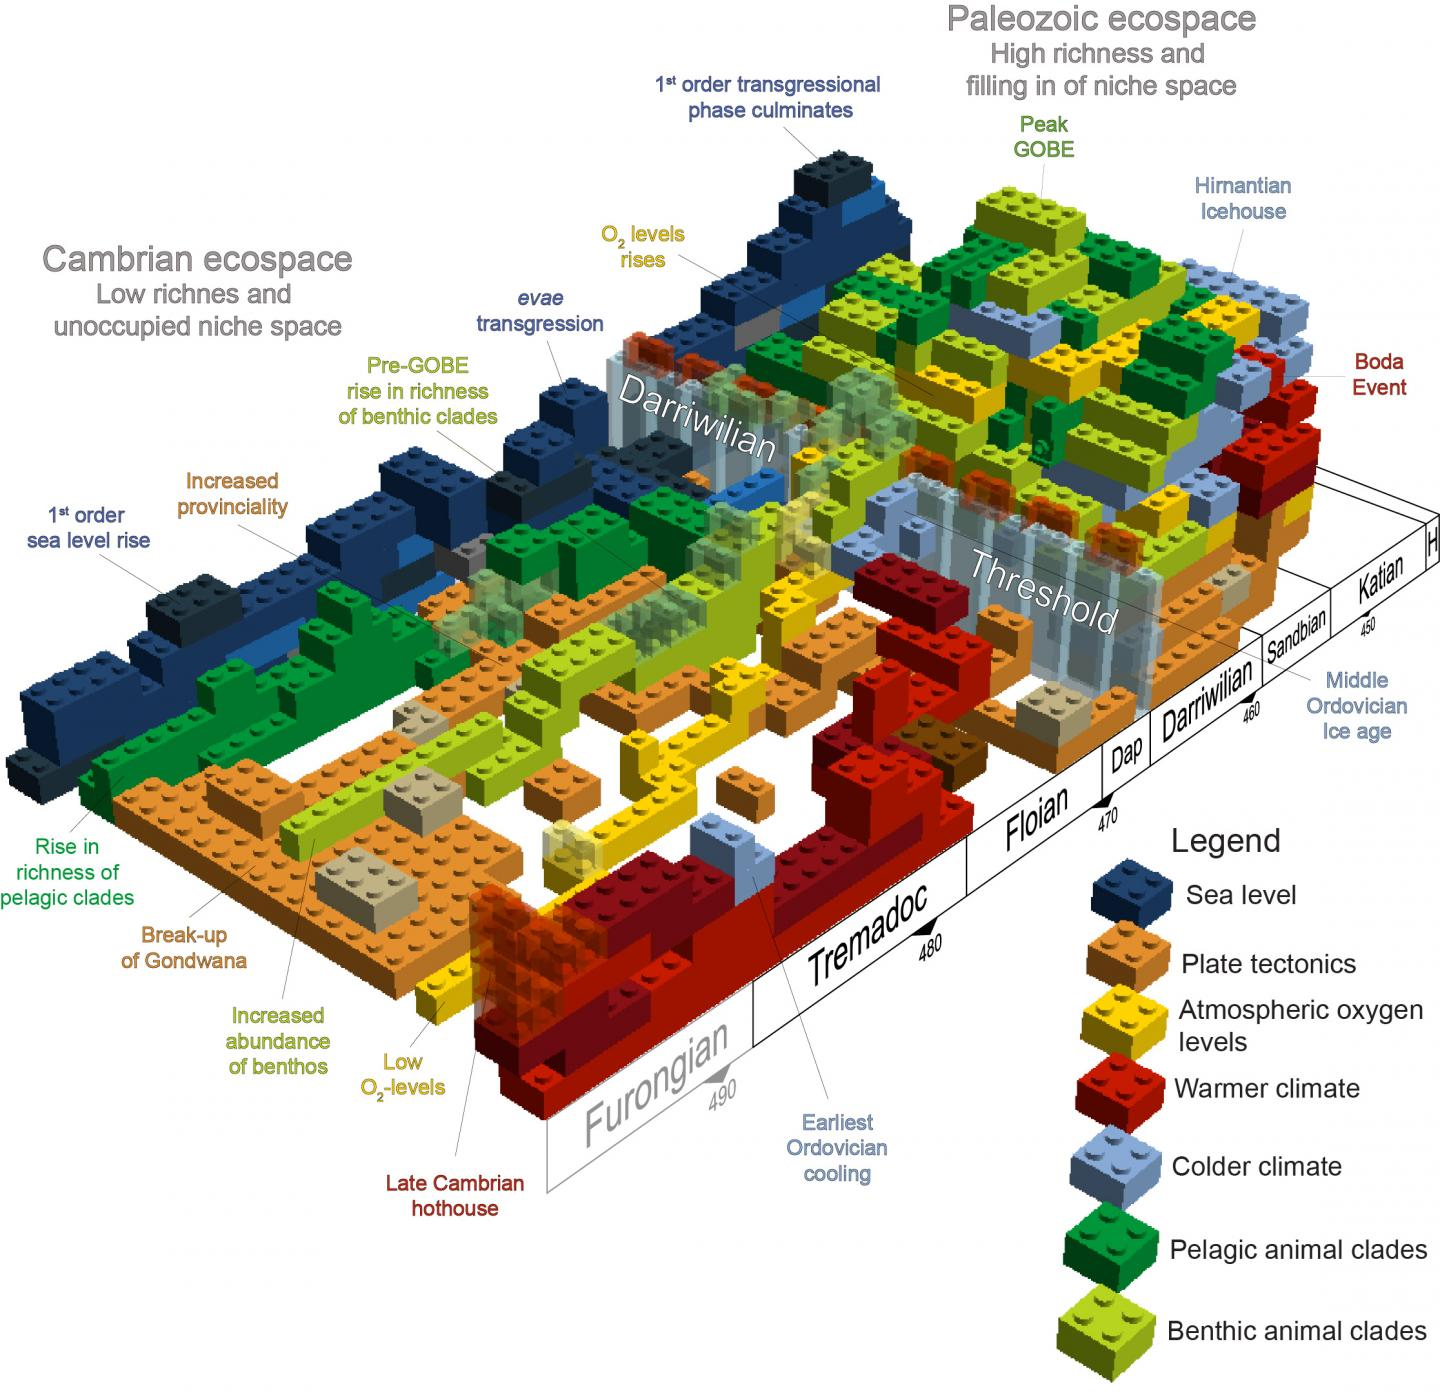 Building Block Model of the Earth System that Produced the Great Ordovician Biodiversificaiton Event